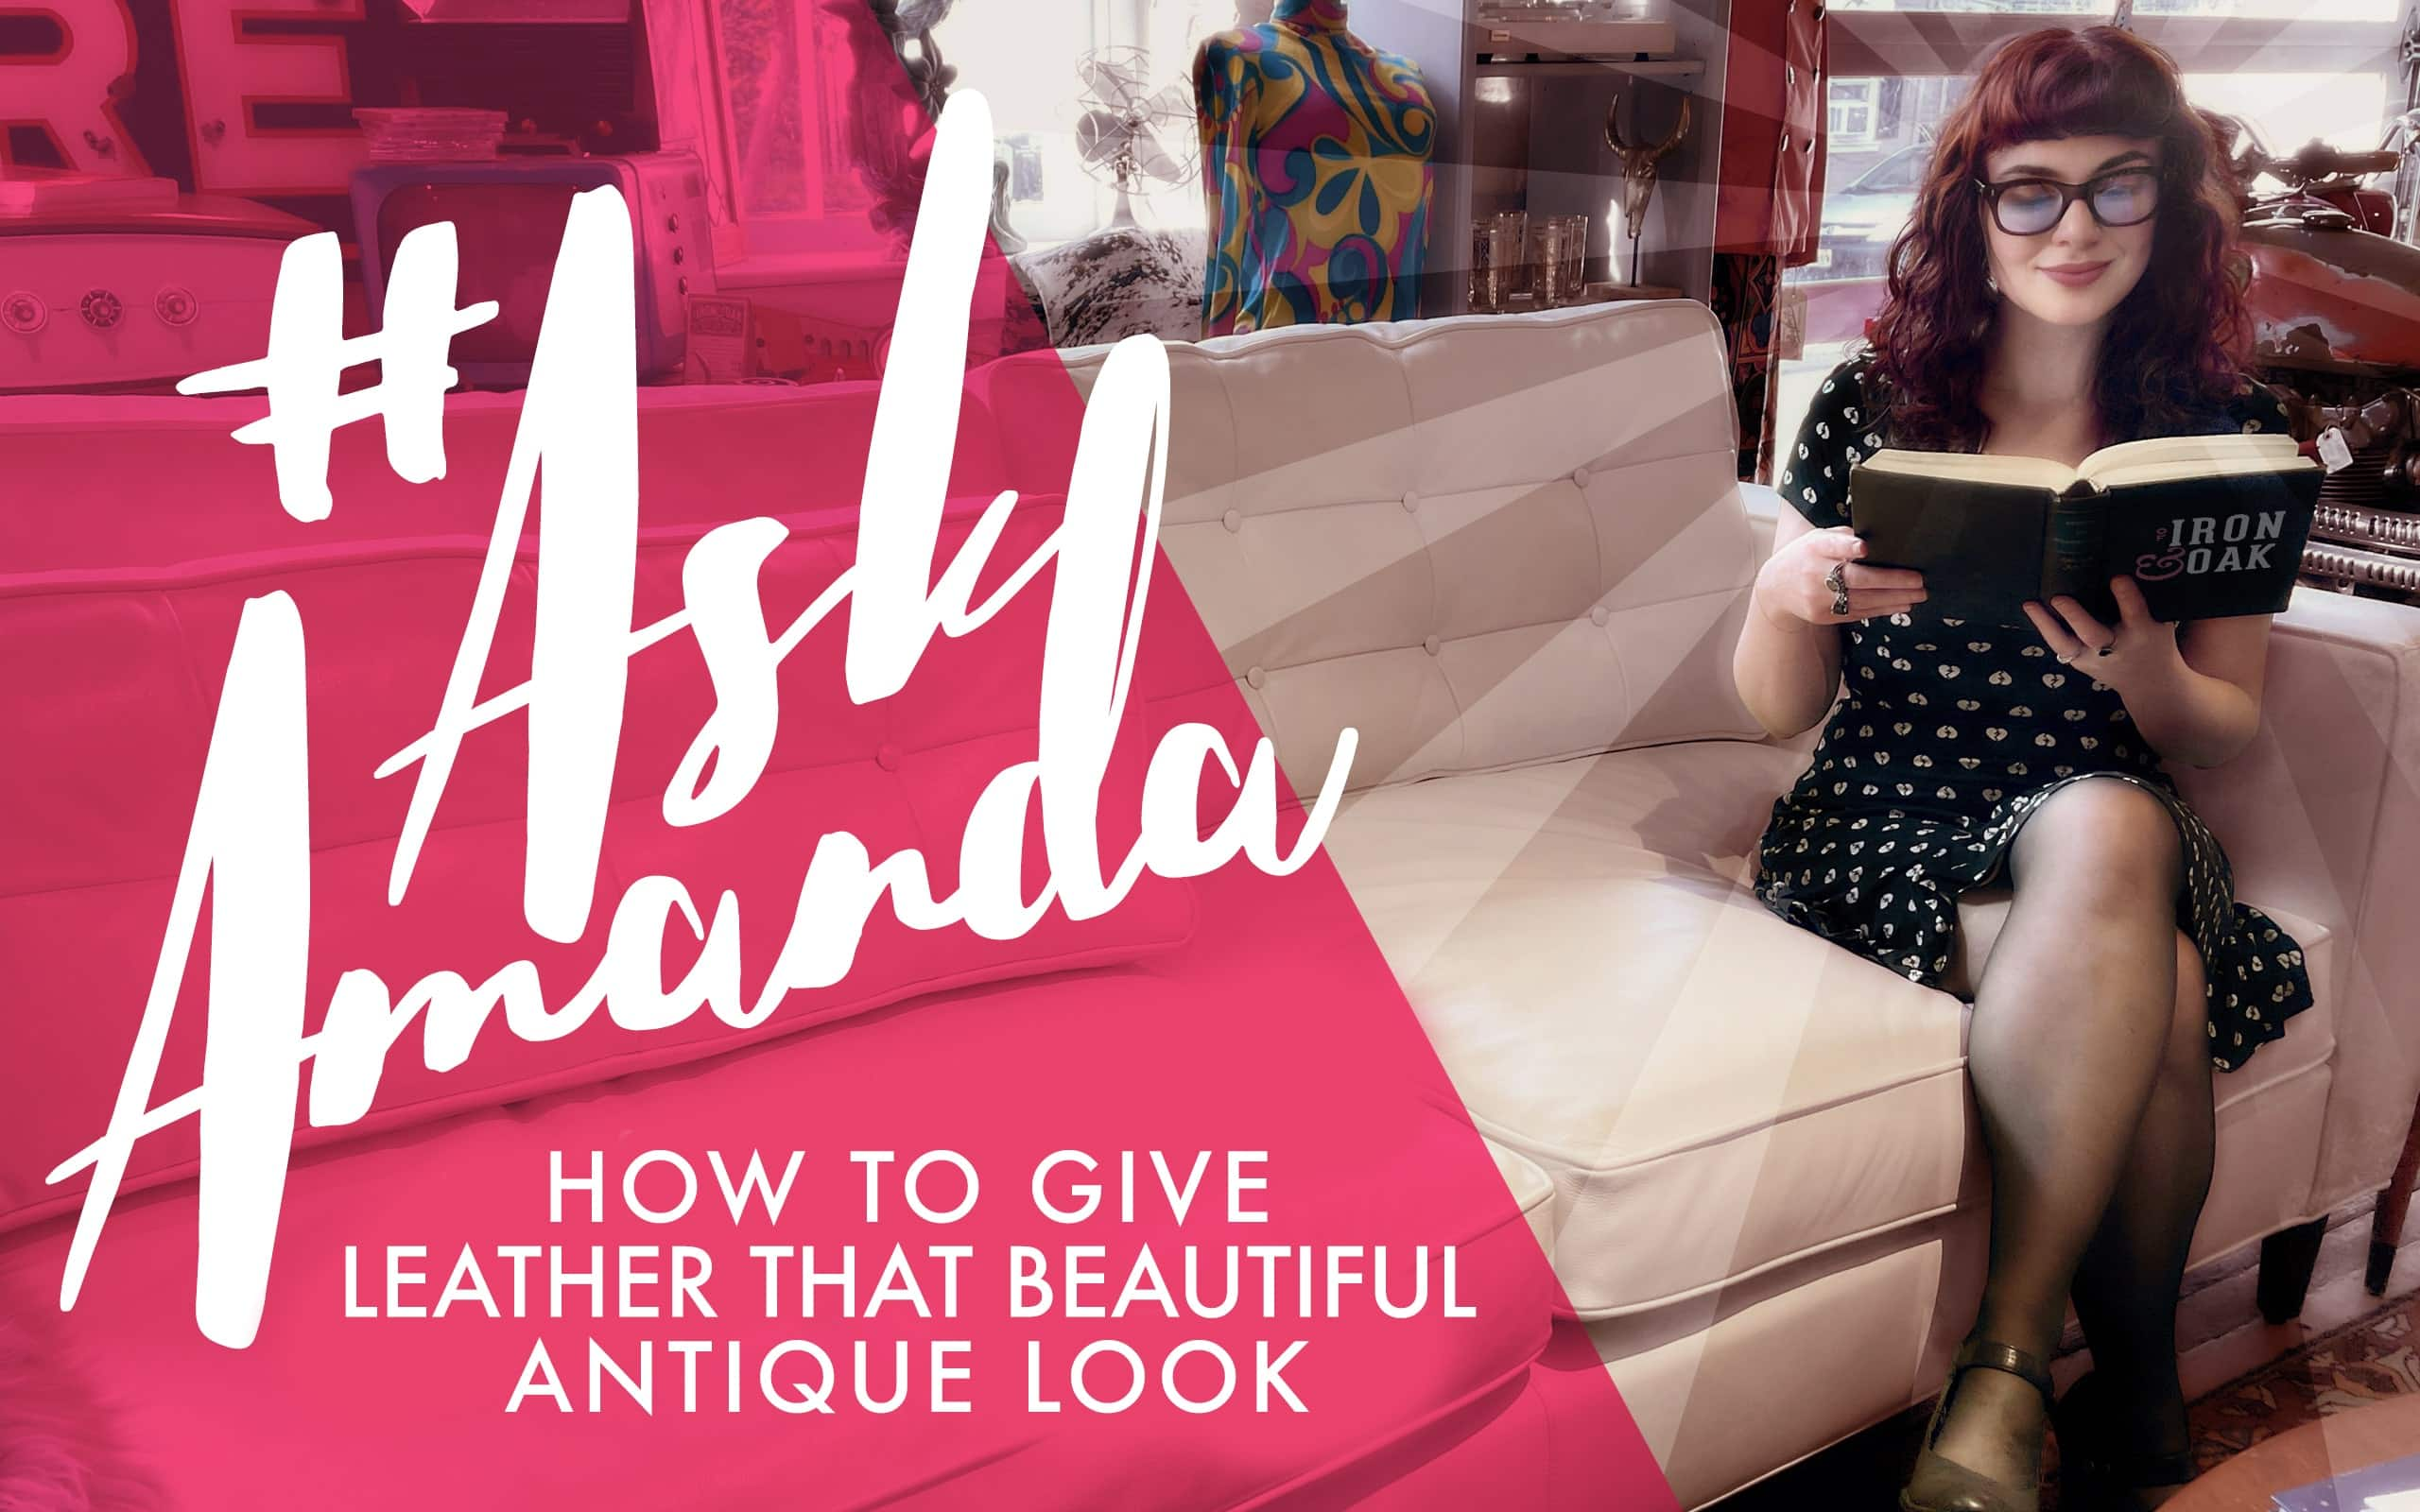 #AskAmanda: How To Give Leather That Beautiful Antique Look